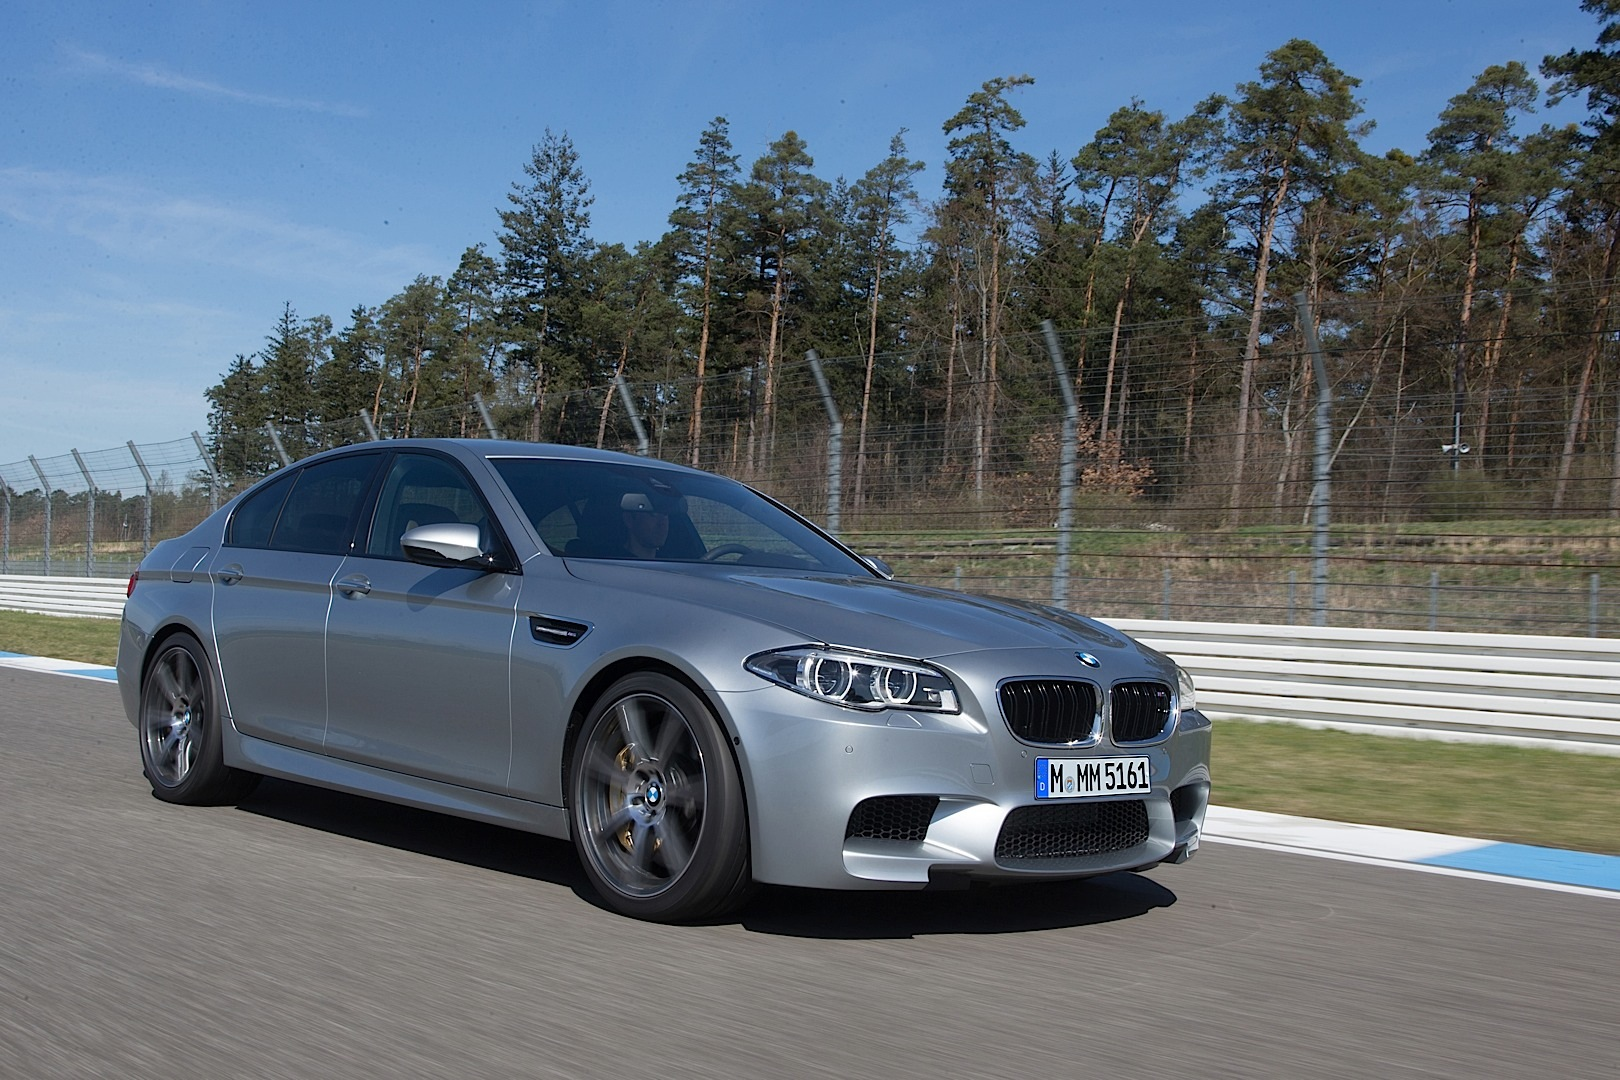 2014 bmw f10 m5 lci officially unveiled autoevolution. Black Bedroom Furniture Sets. Home Design Ideas